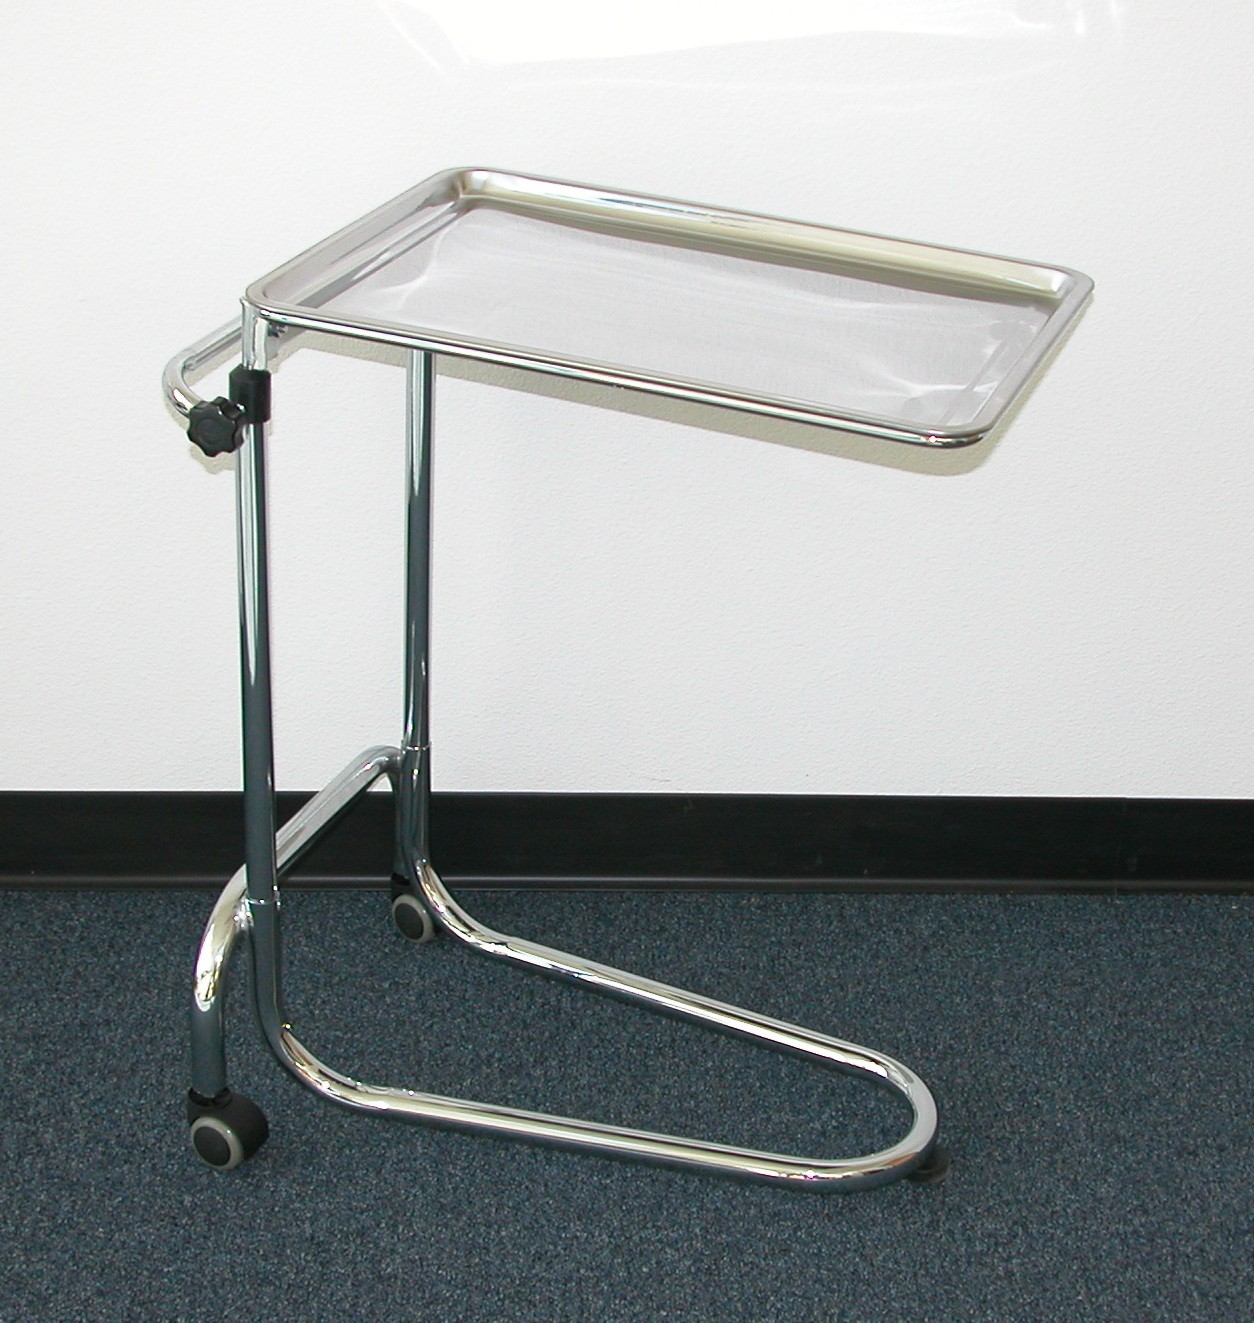 Picture of New Mayo Stand with Tray - IN STOCK